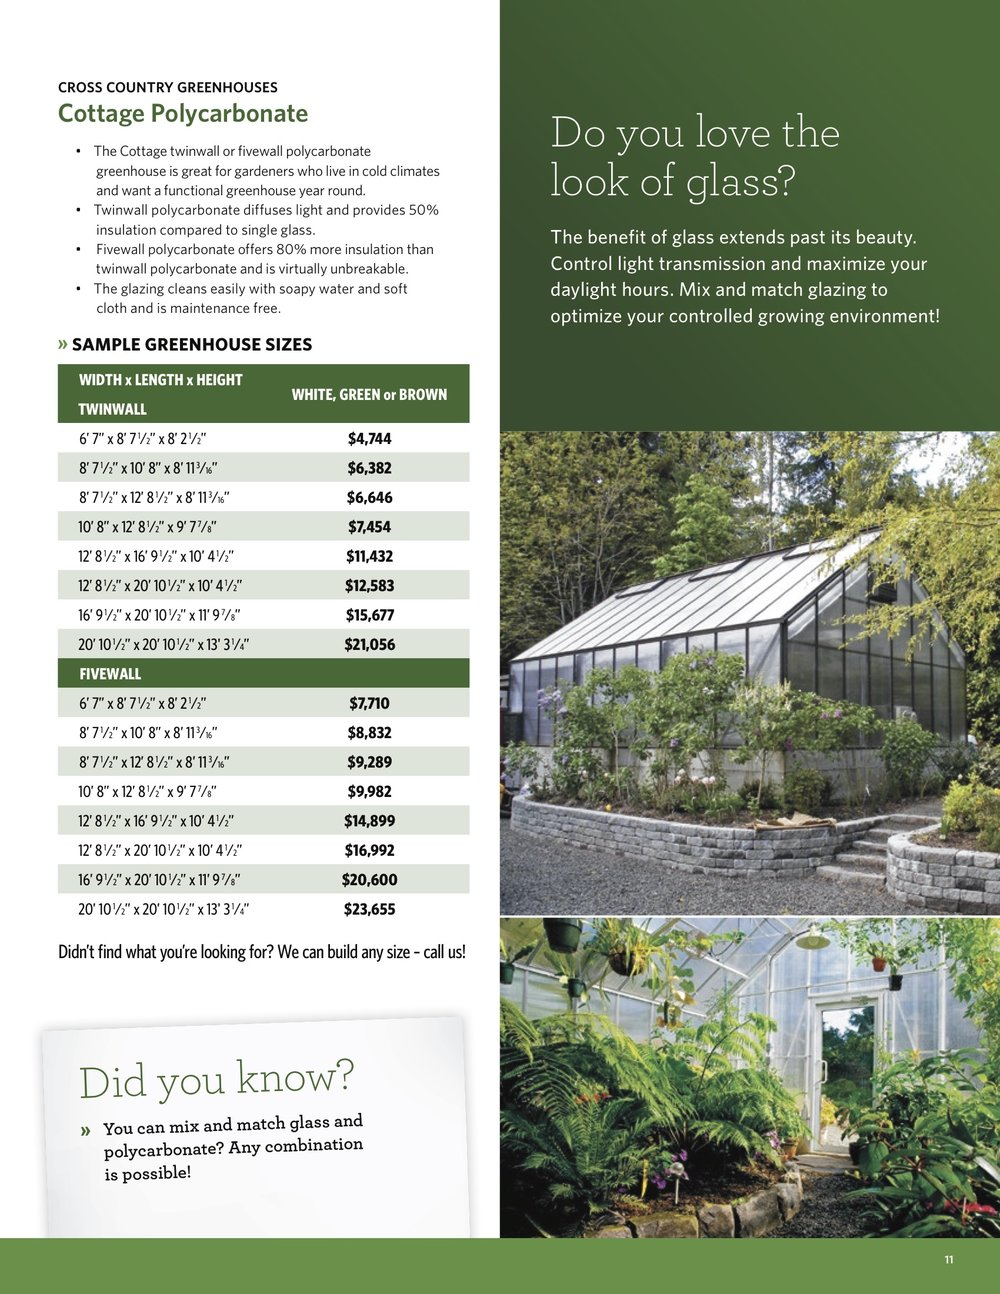 111552_Wisconsin Greenhouse Company_National Catalog (4) (dragged) 10.jpeg